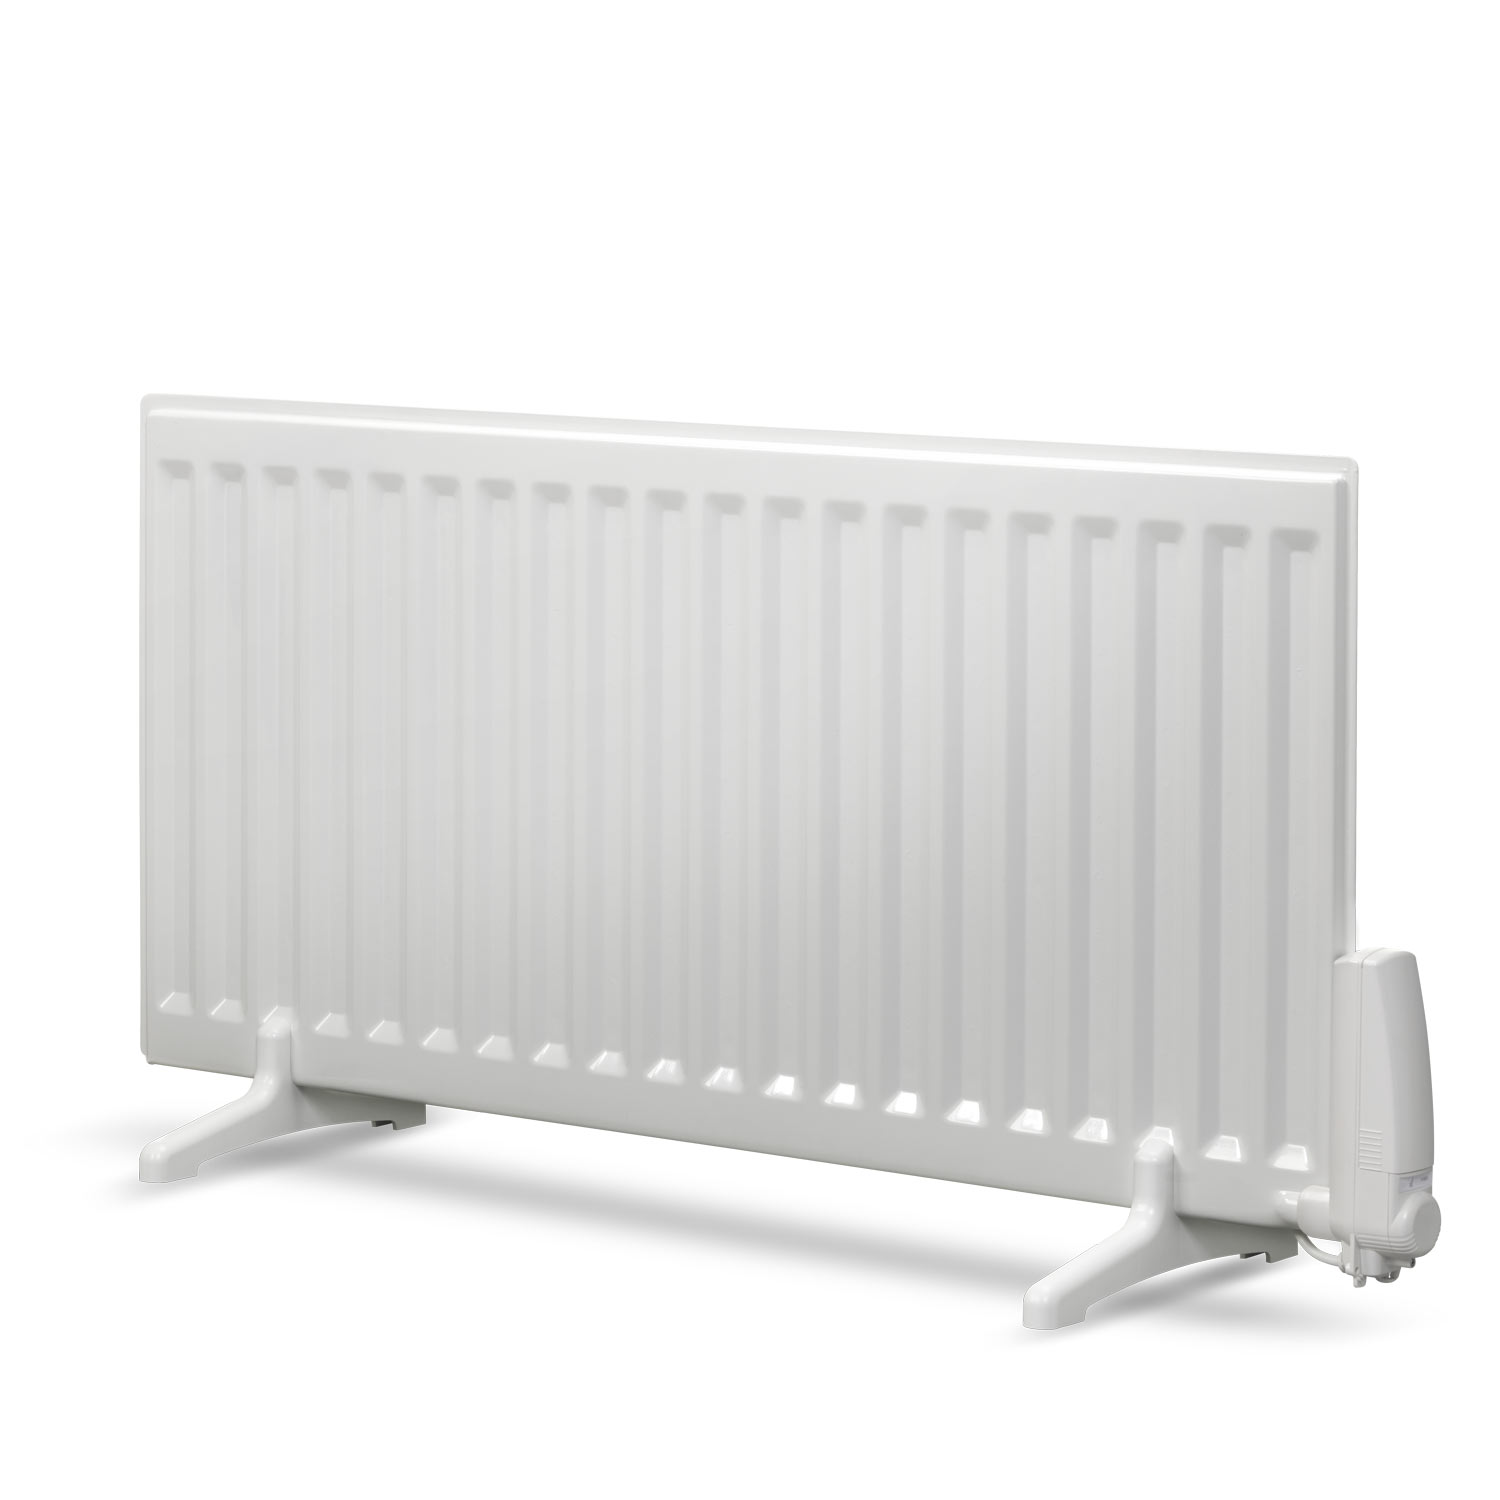 radiator heizk rper elektrisch h user immobilien bau. Black Bedroom Furniture Sets. Home Design Ideas